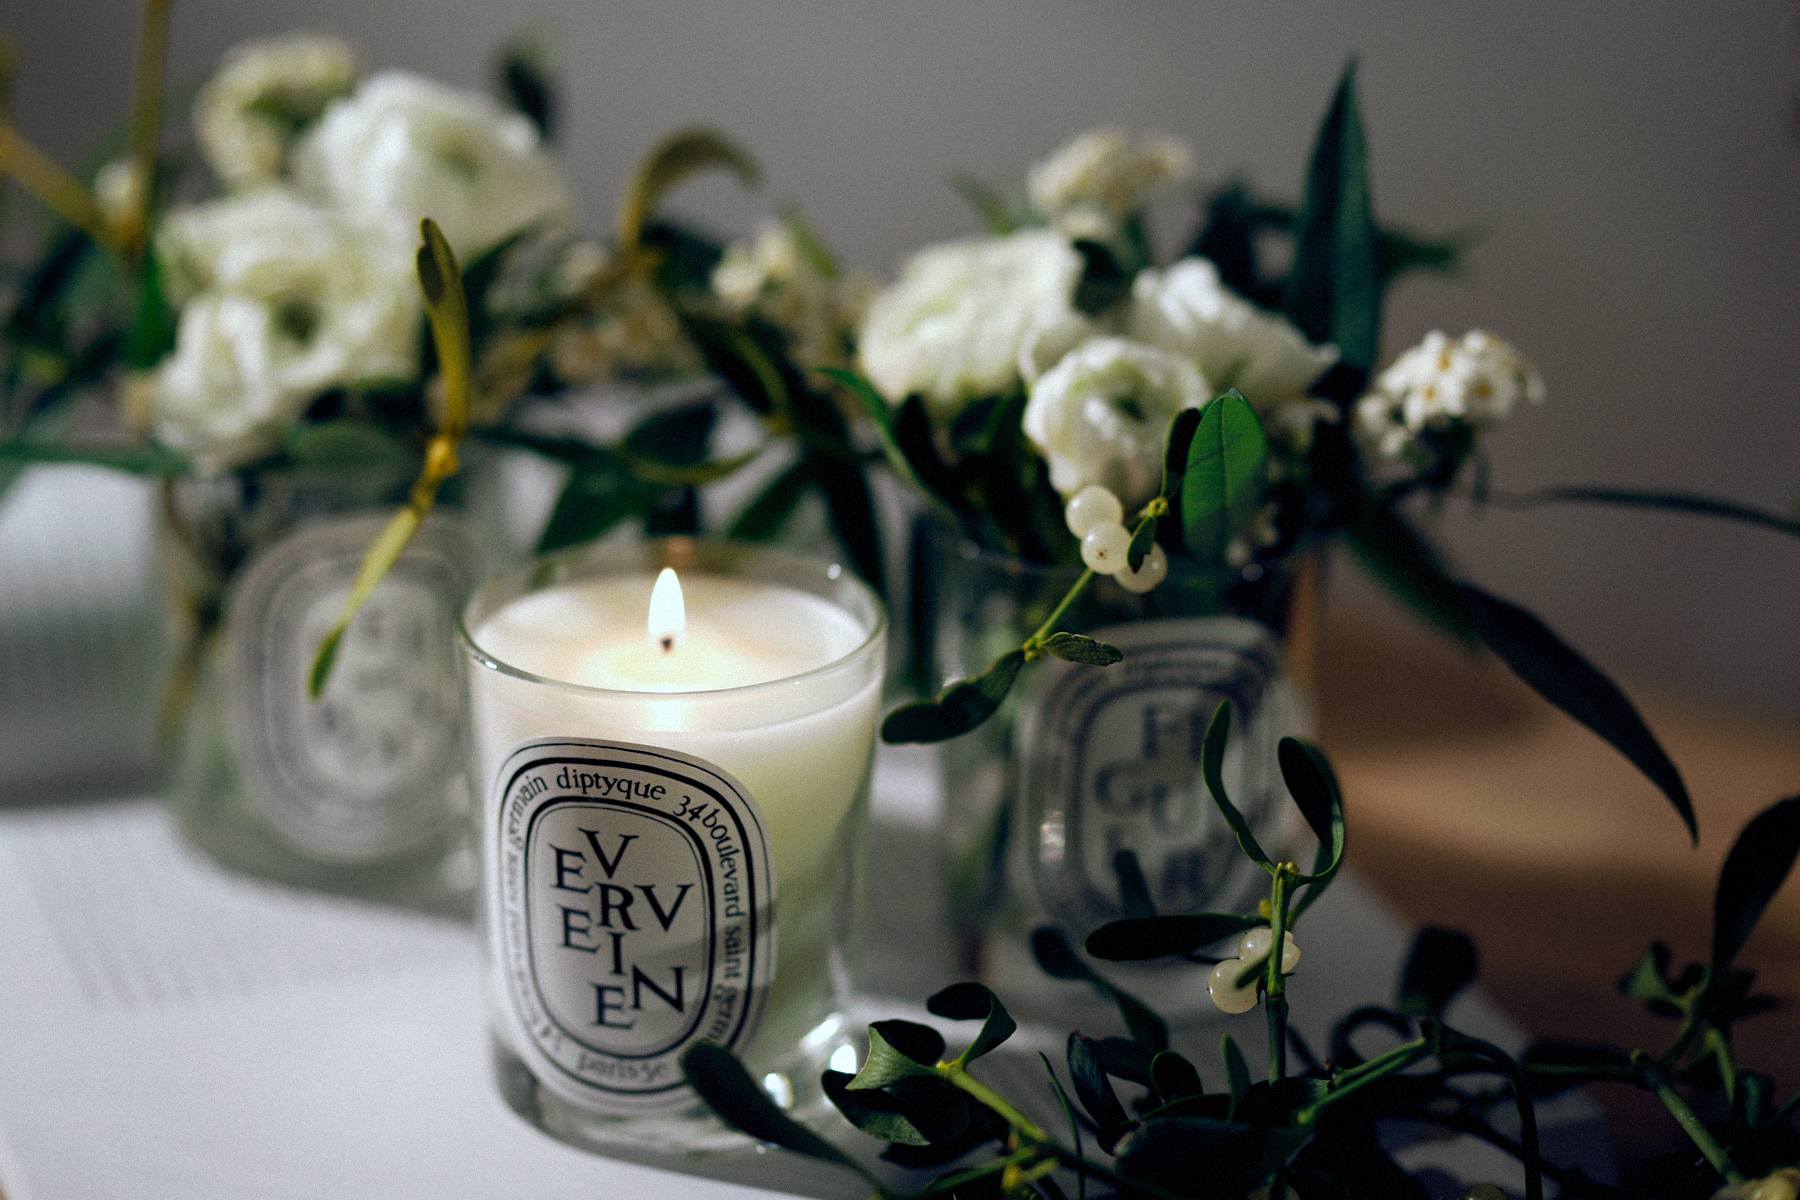 diptyque advent christmas decor white flowers floral decor floristik gesteck winter home and living interior design flowerdesign bloom cats & dogs lifestyle beauty fashion blogger modeblog fashionblog hund und katze ricarda schernus max bechman fotograf 3